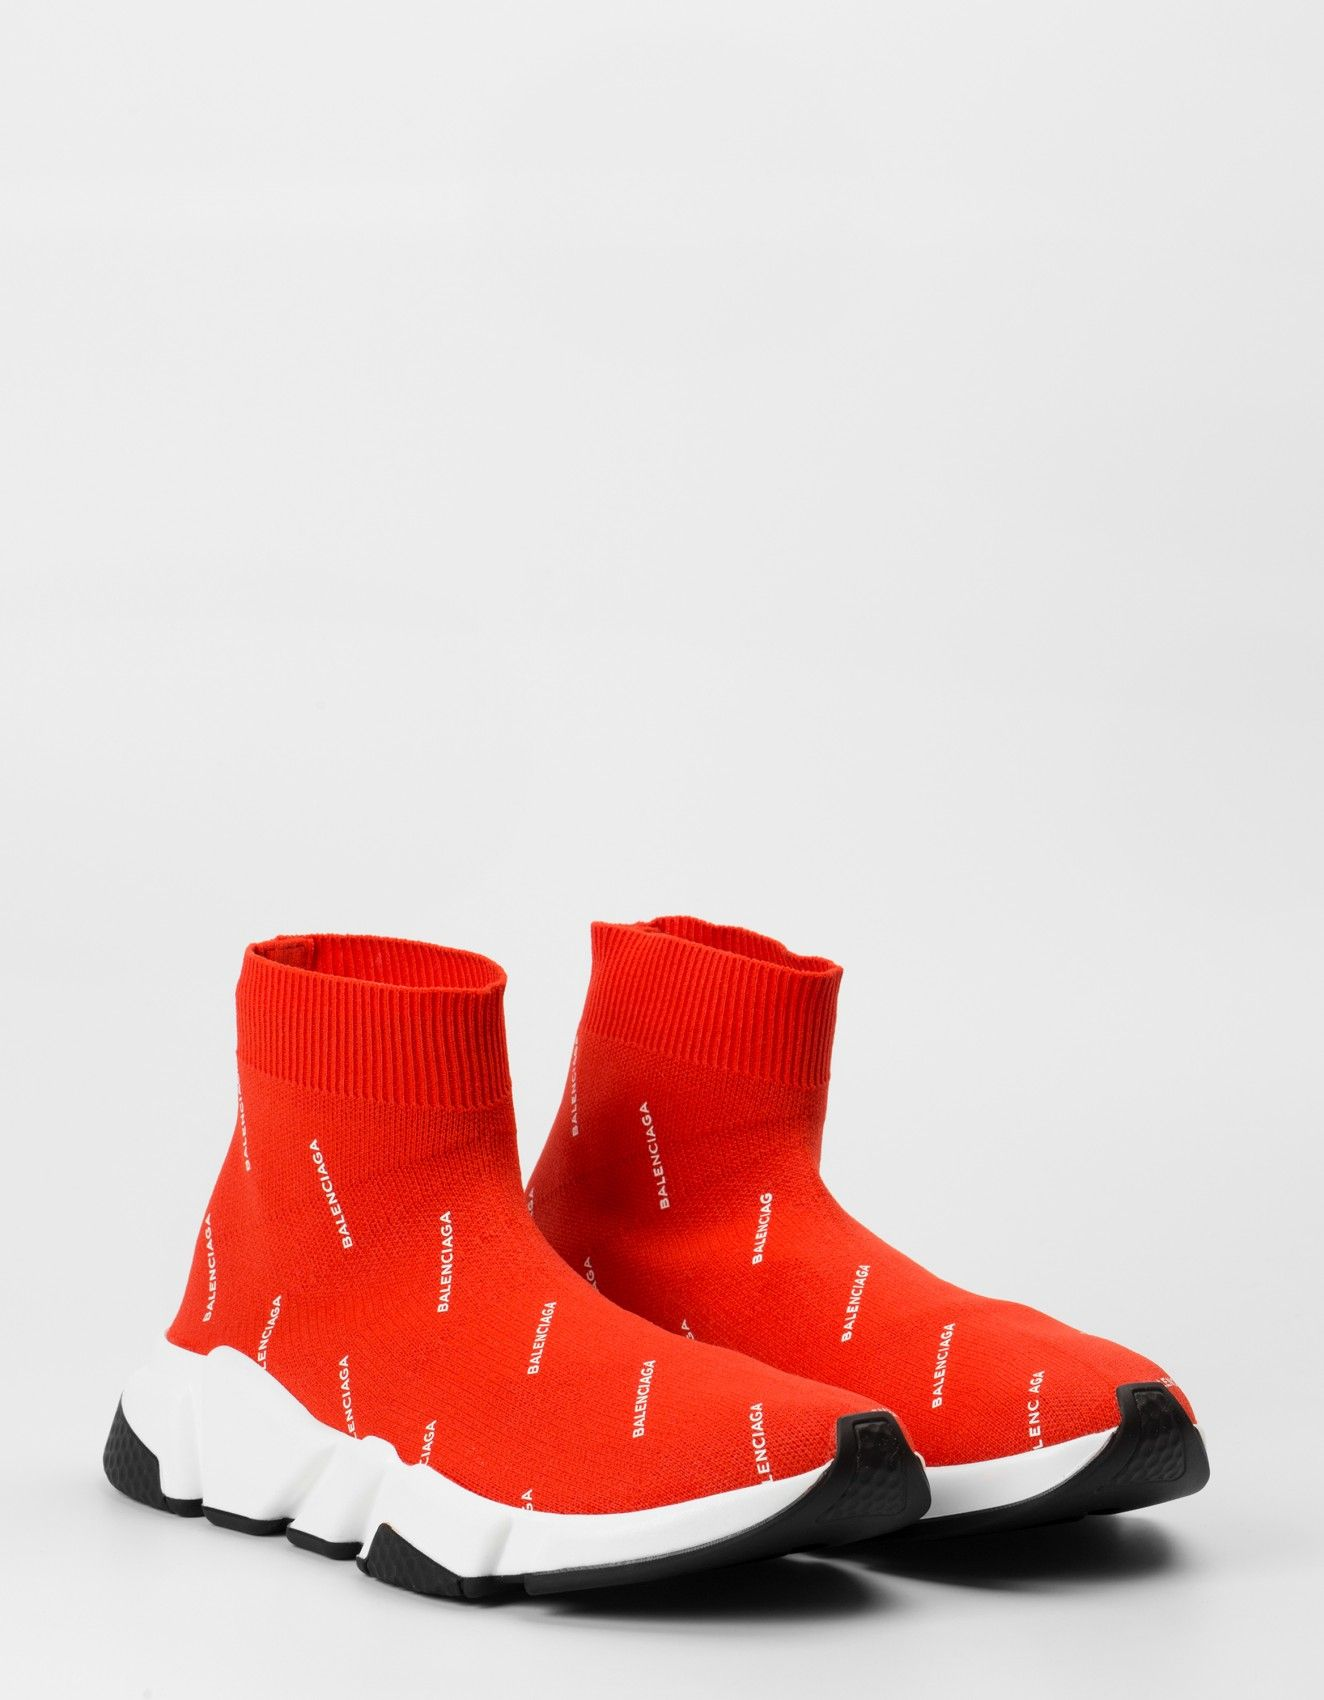 Sneakers BALENCIAGA FOR COLETTE Sneakers